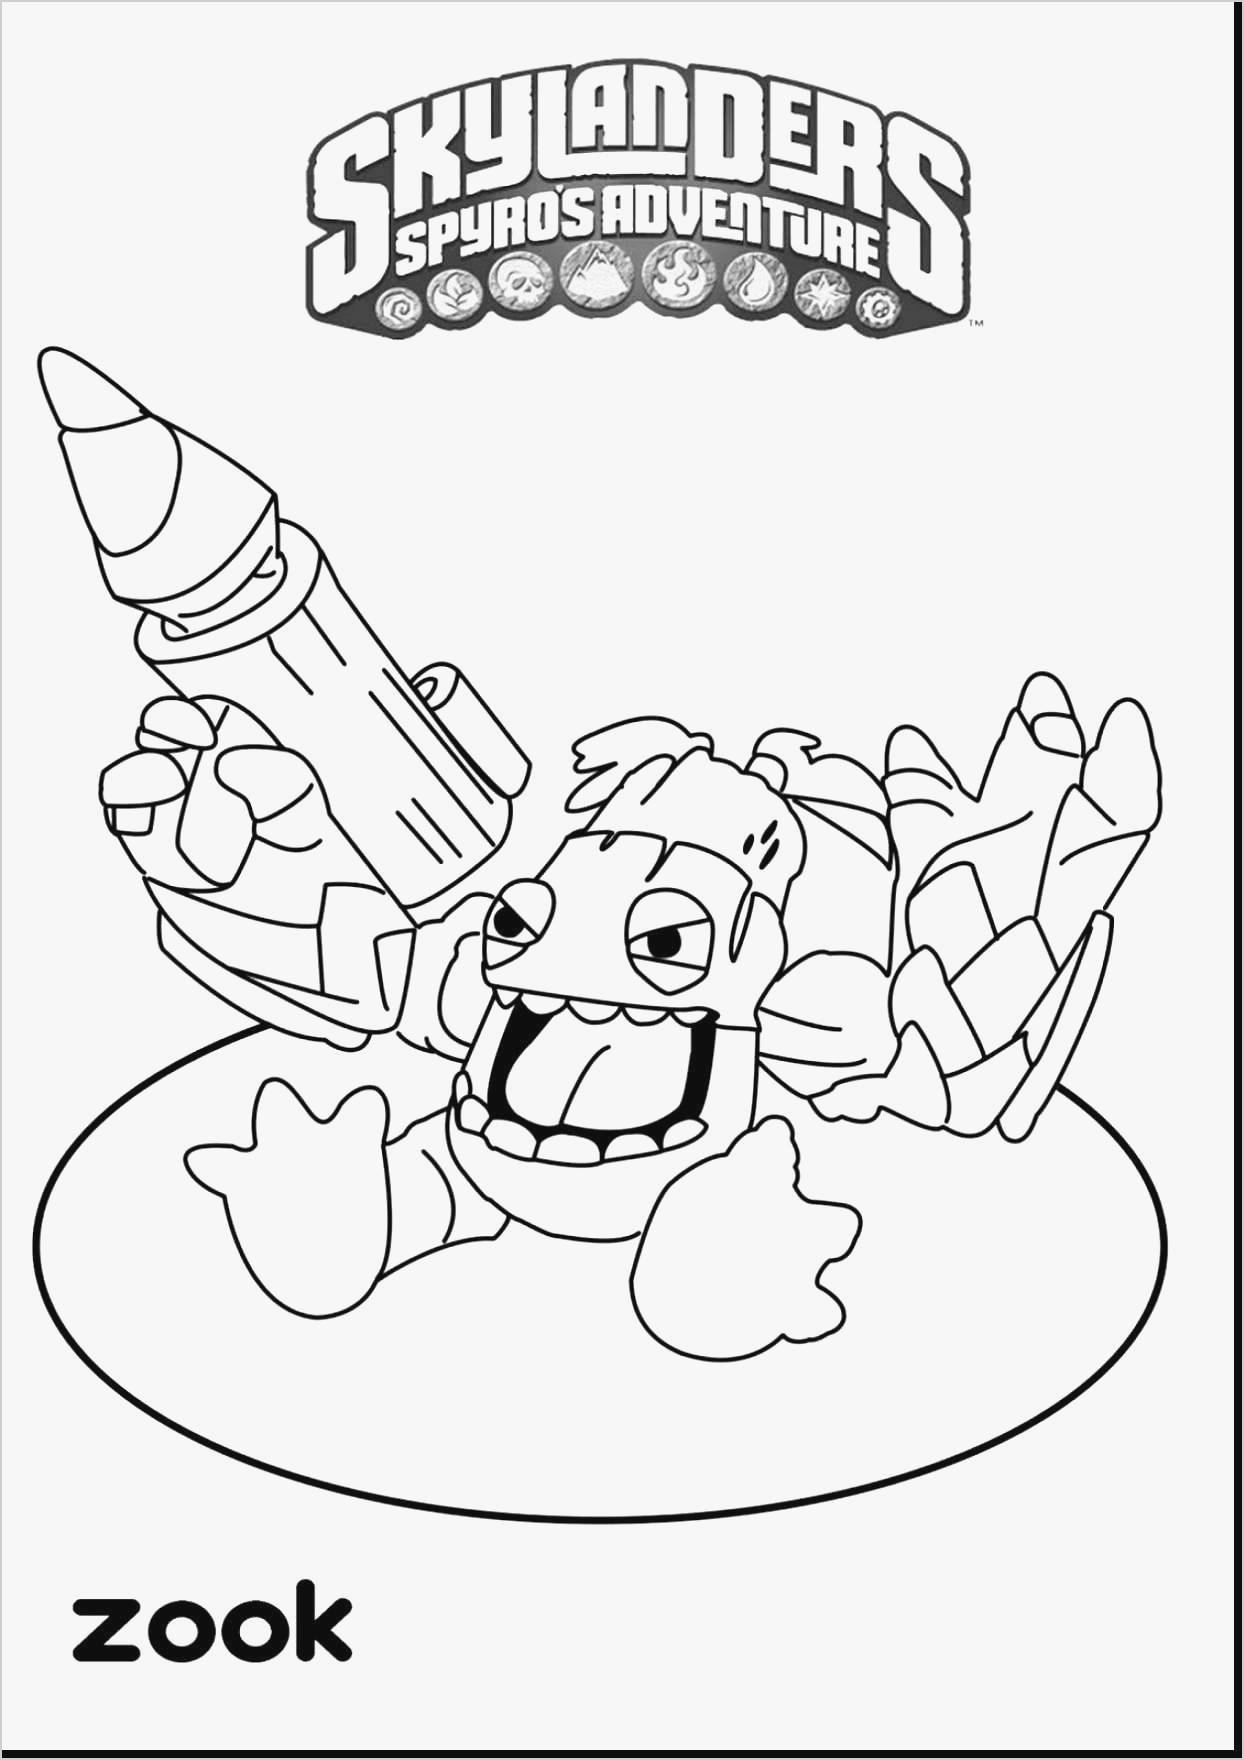 sesame street printable coloring pages Download-Download · Elegant Sesame Street Printable Coloring Pages Coloring Pages 13-i